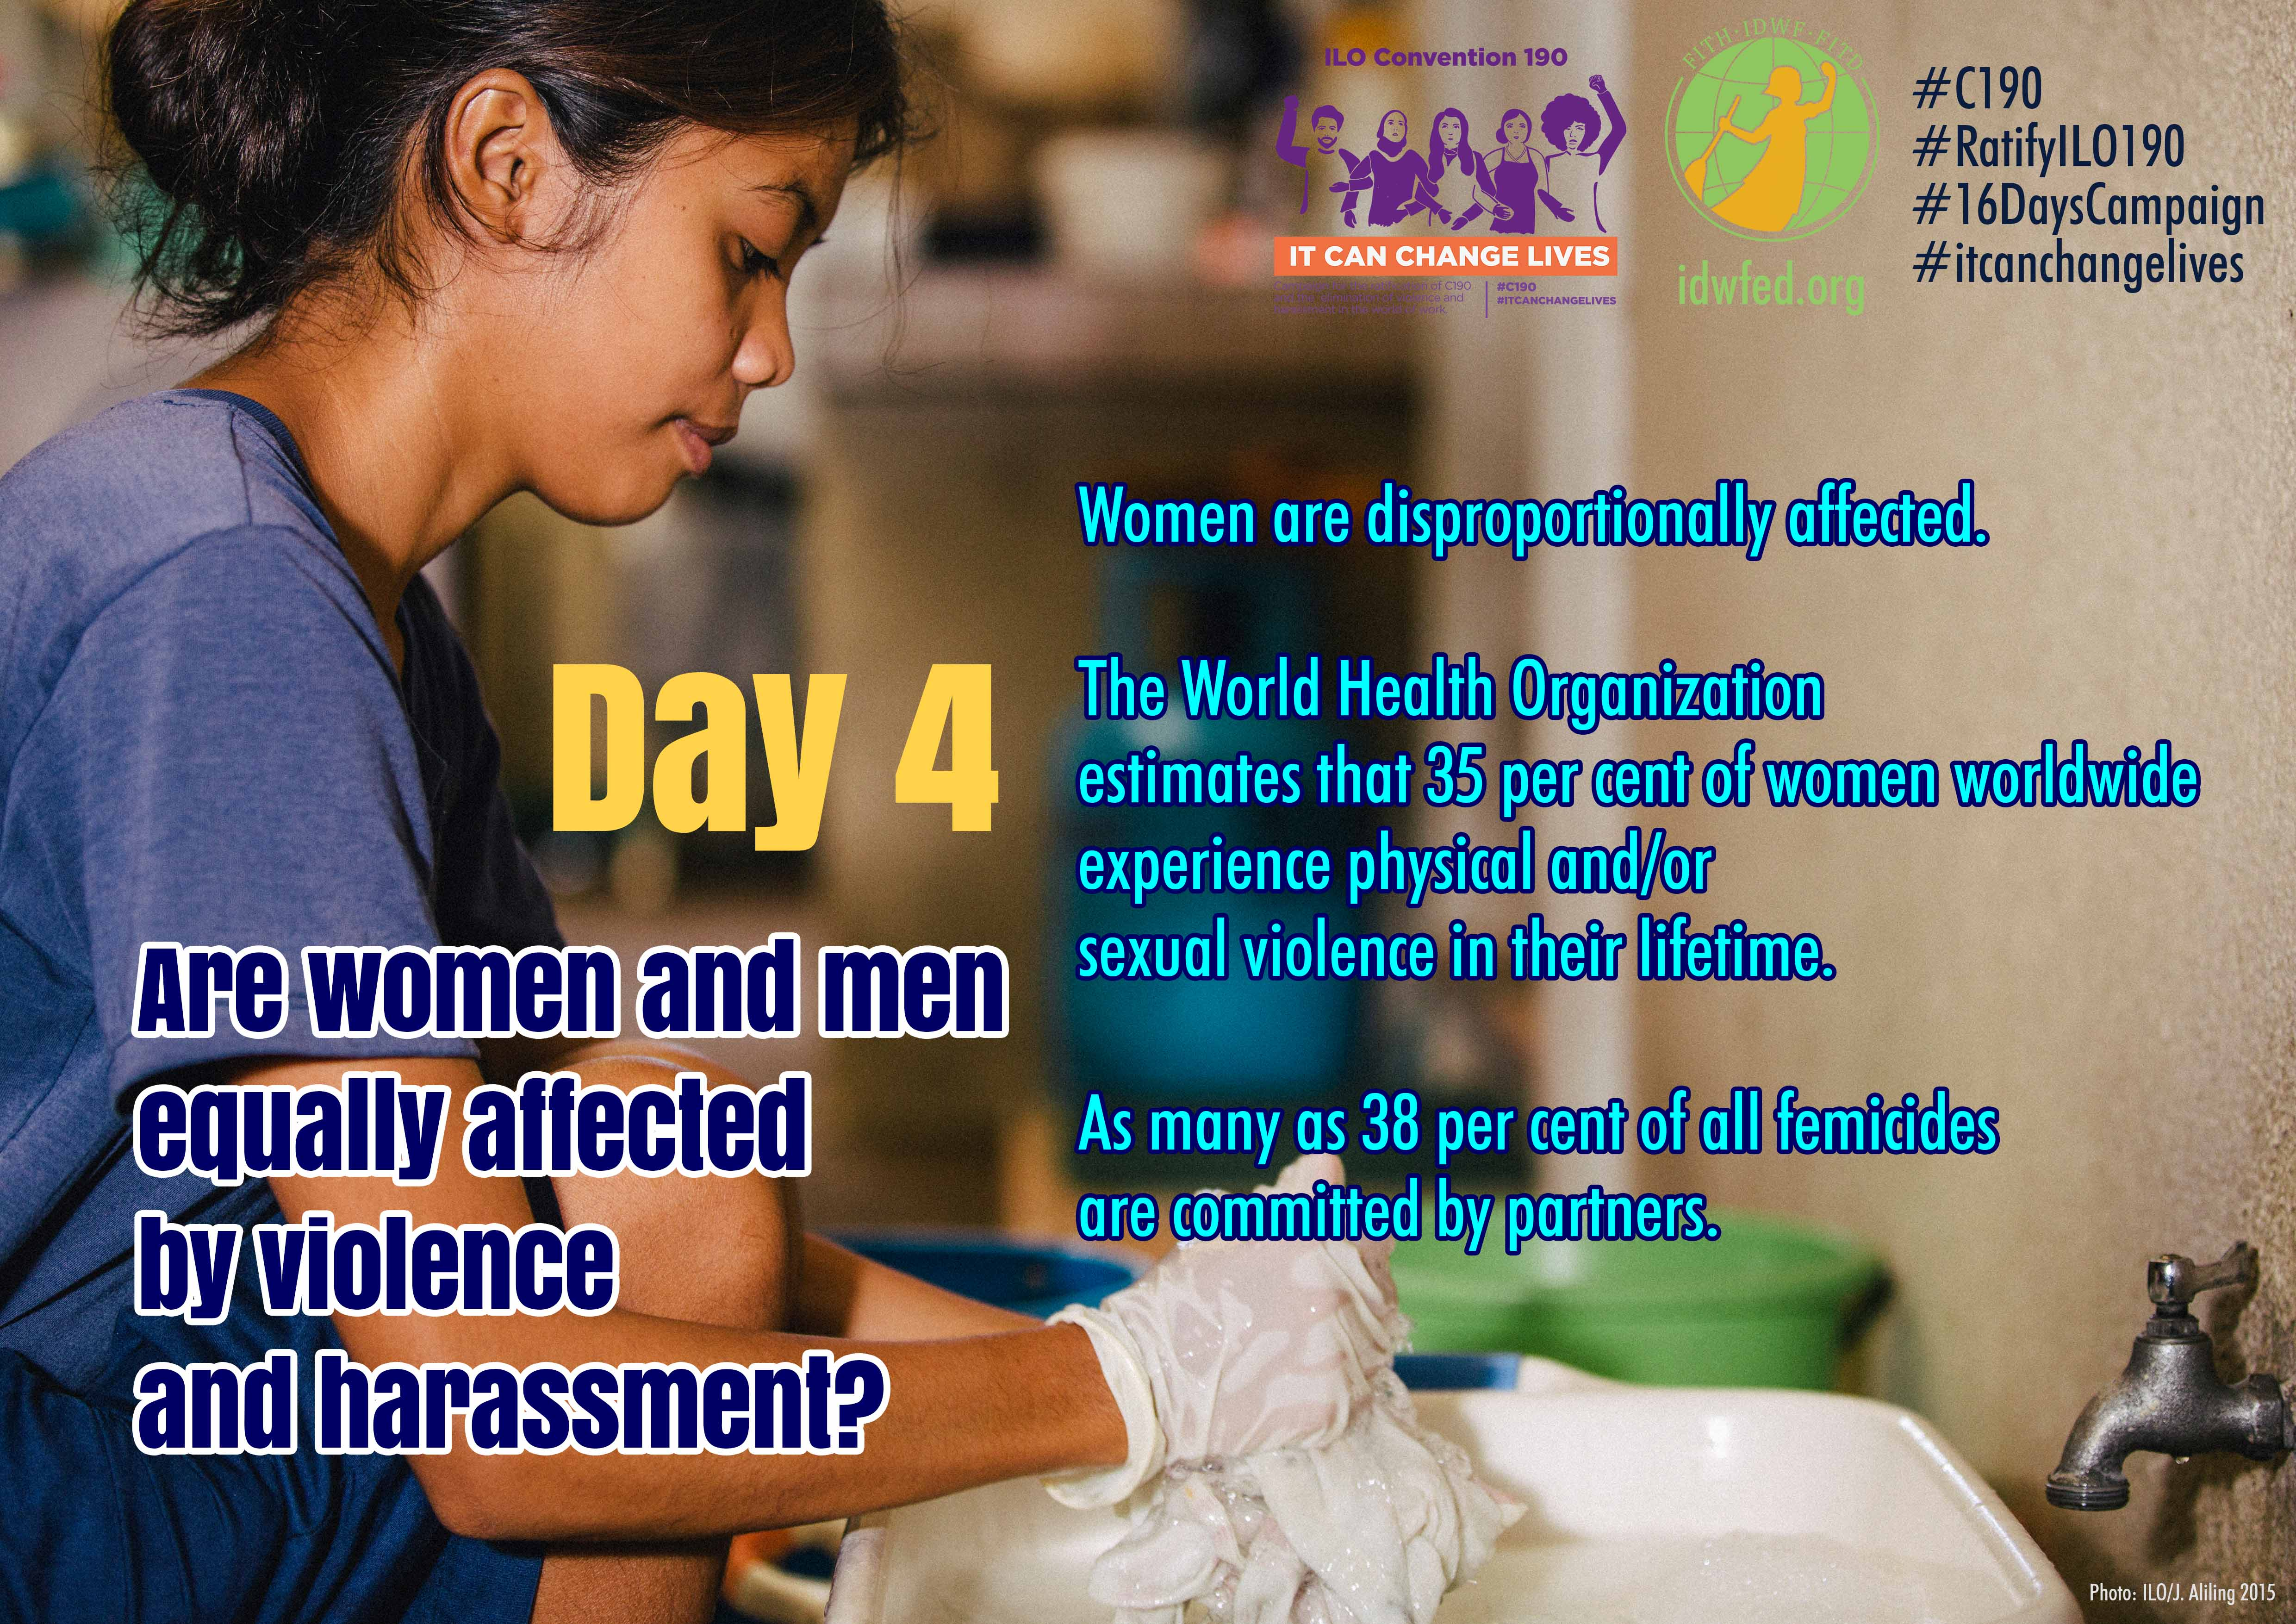 4. Are women and men equally affected by violence and harassment?